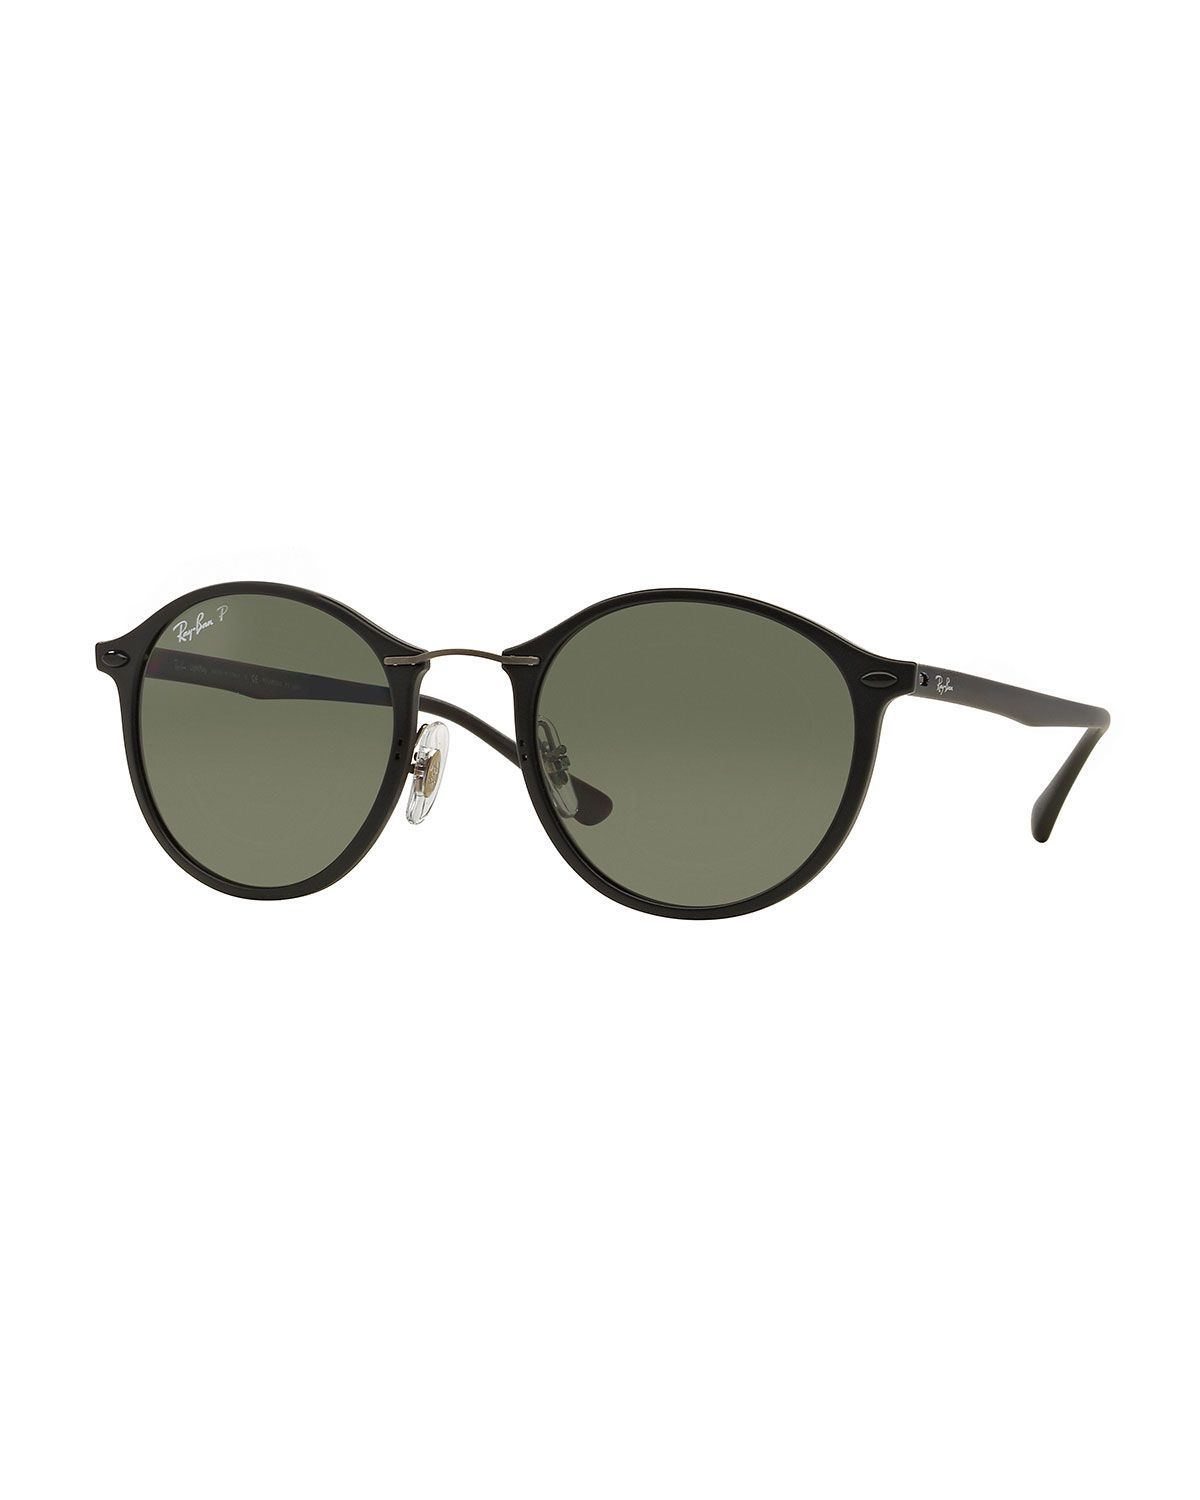 Ray Ban Classic Round Sunglasses Plastic Frames With Metal Wire Nose Bridge Solid Tonal Lenses Sili Black Round Sunglasses Round Sunglasses Metal Sunglasses